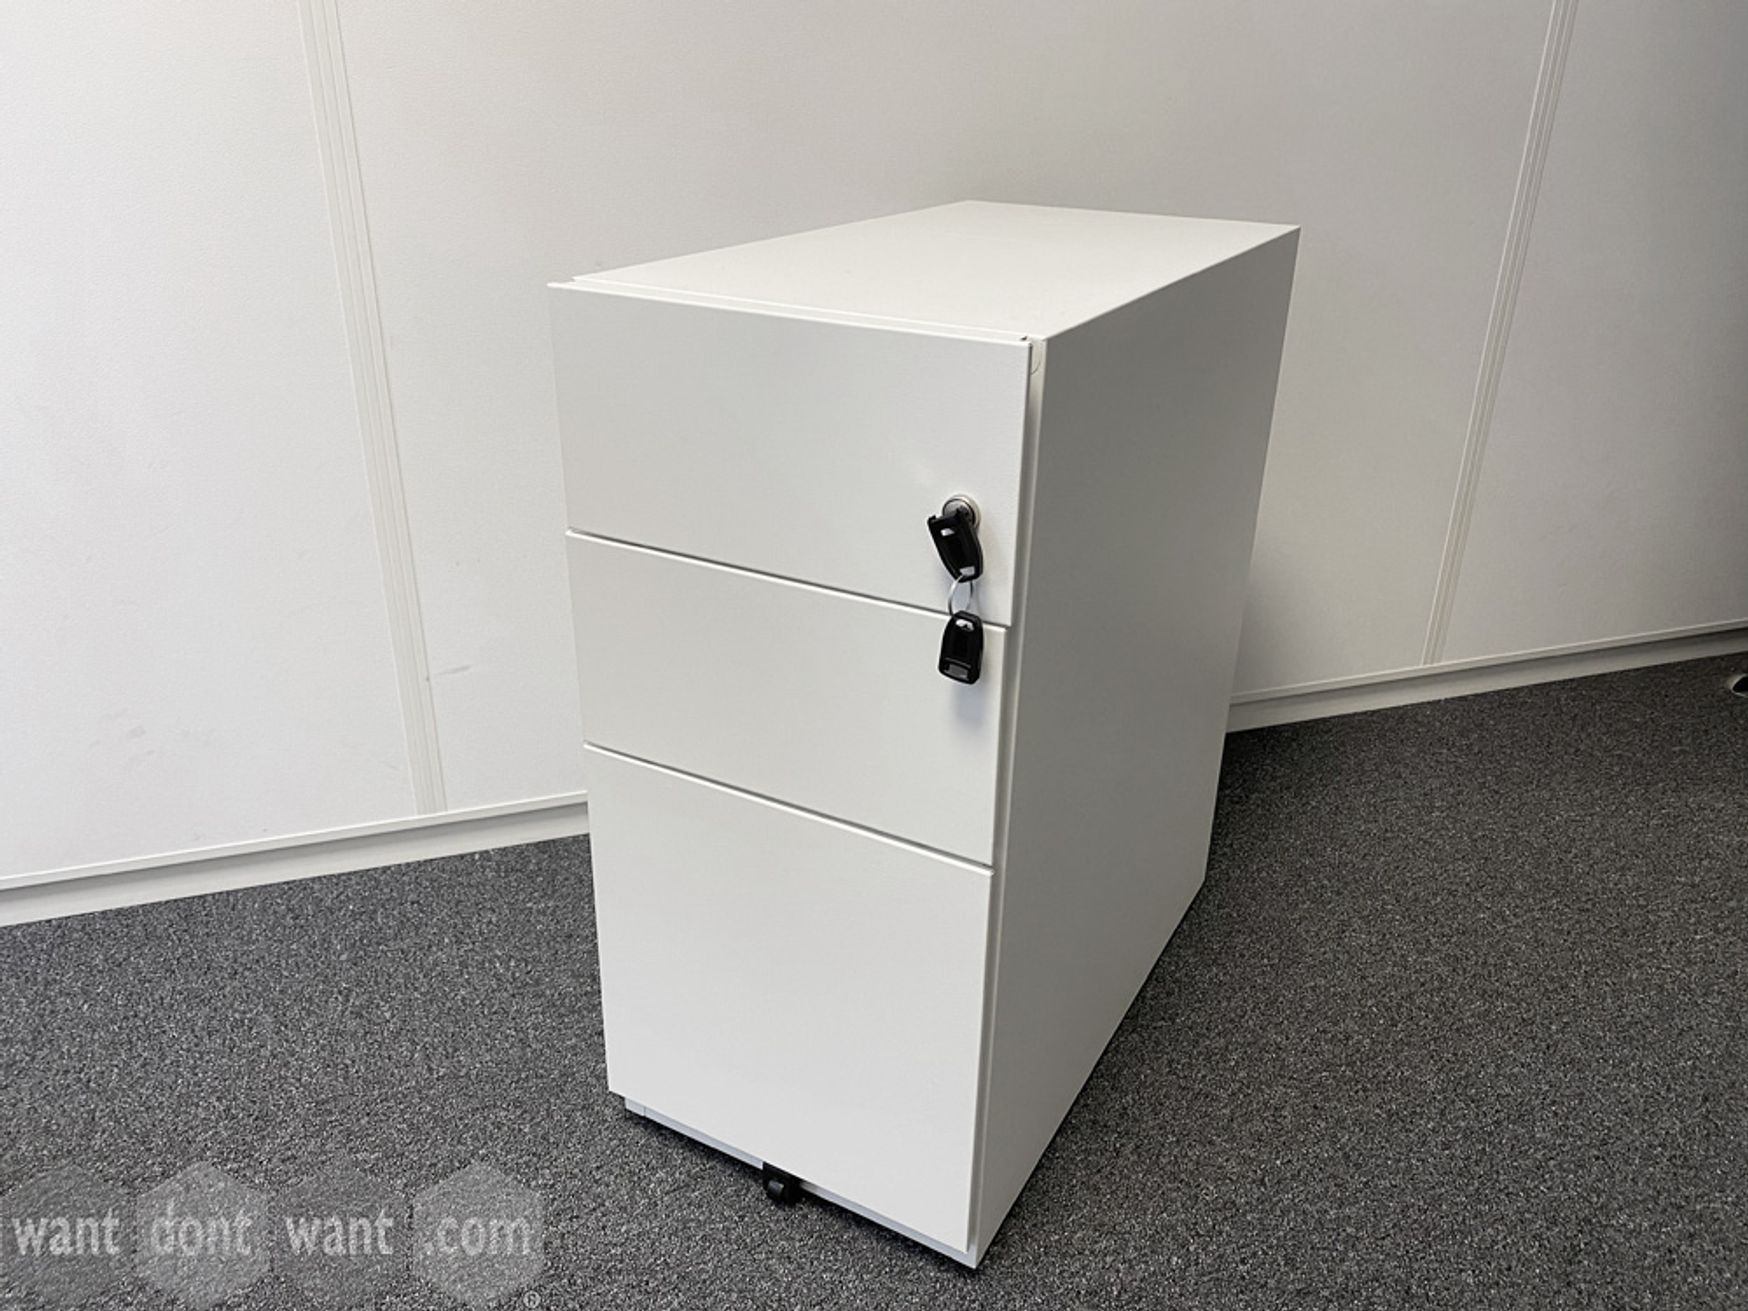 Used white slimline 3-drawer pedestals with 2 x shallow drawers and 1 x filing drawer.